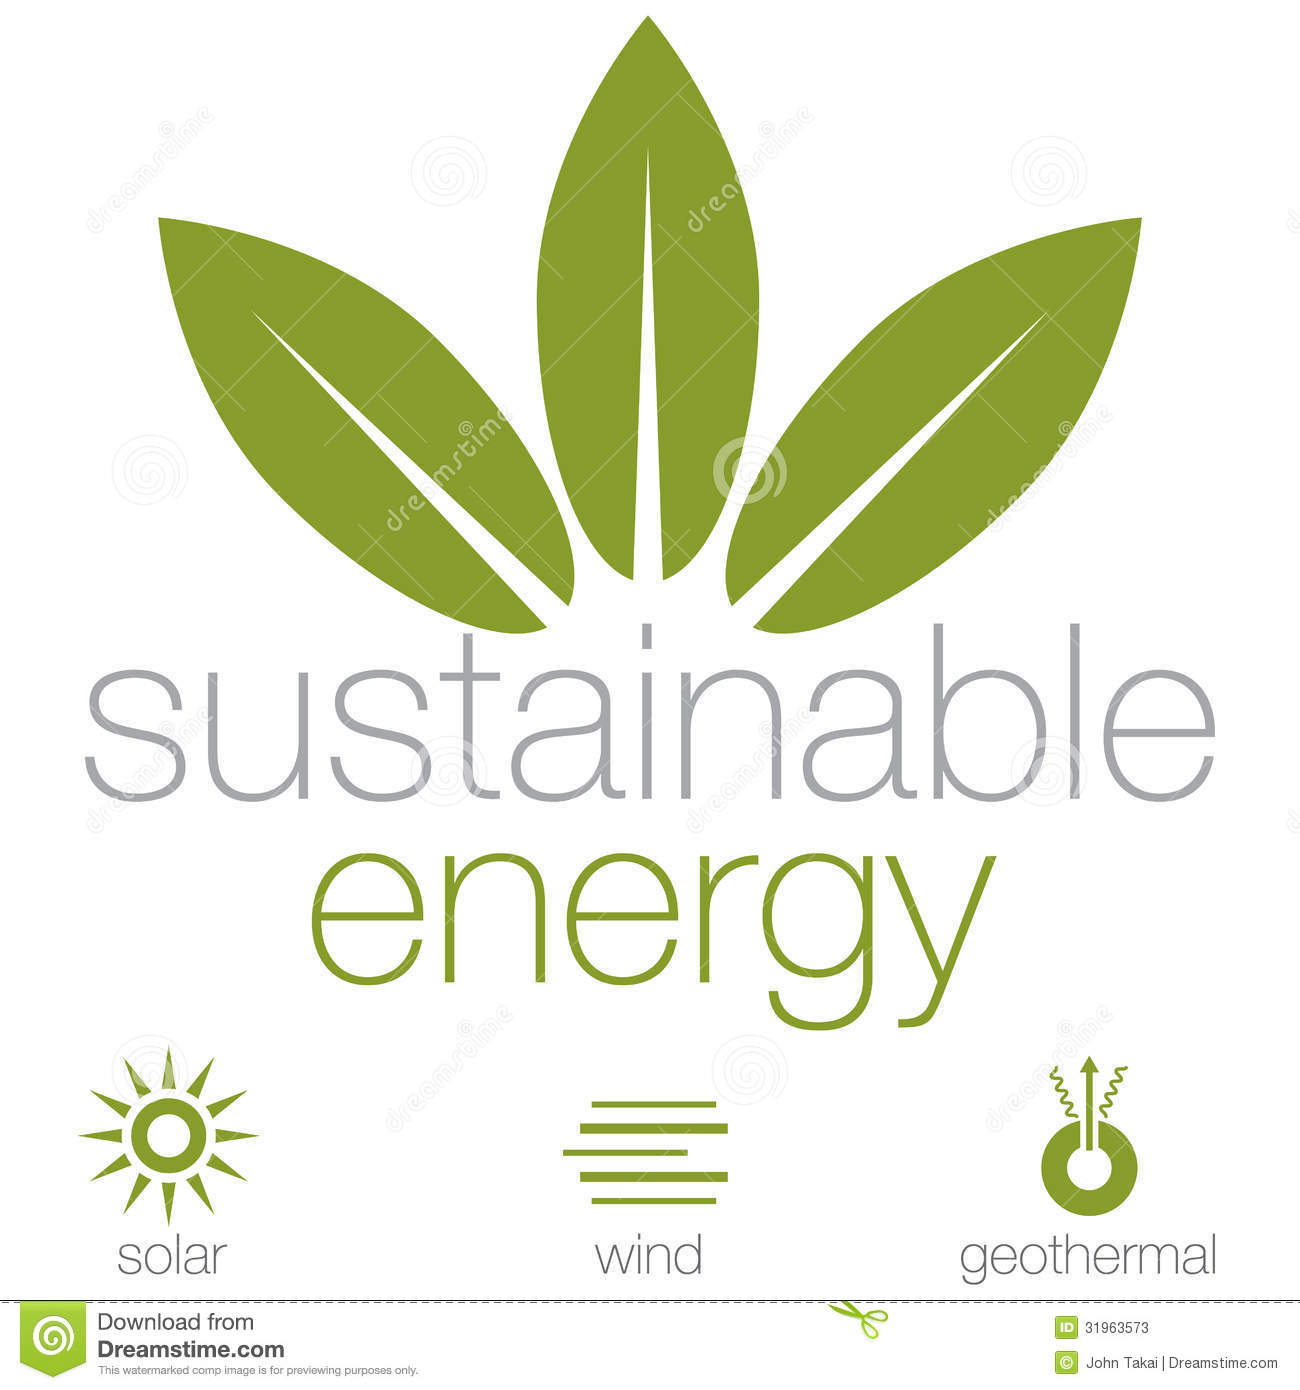 Sustainable Energy Stock Photos - Image: 31963573